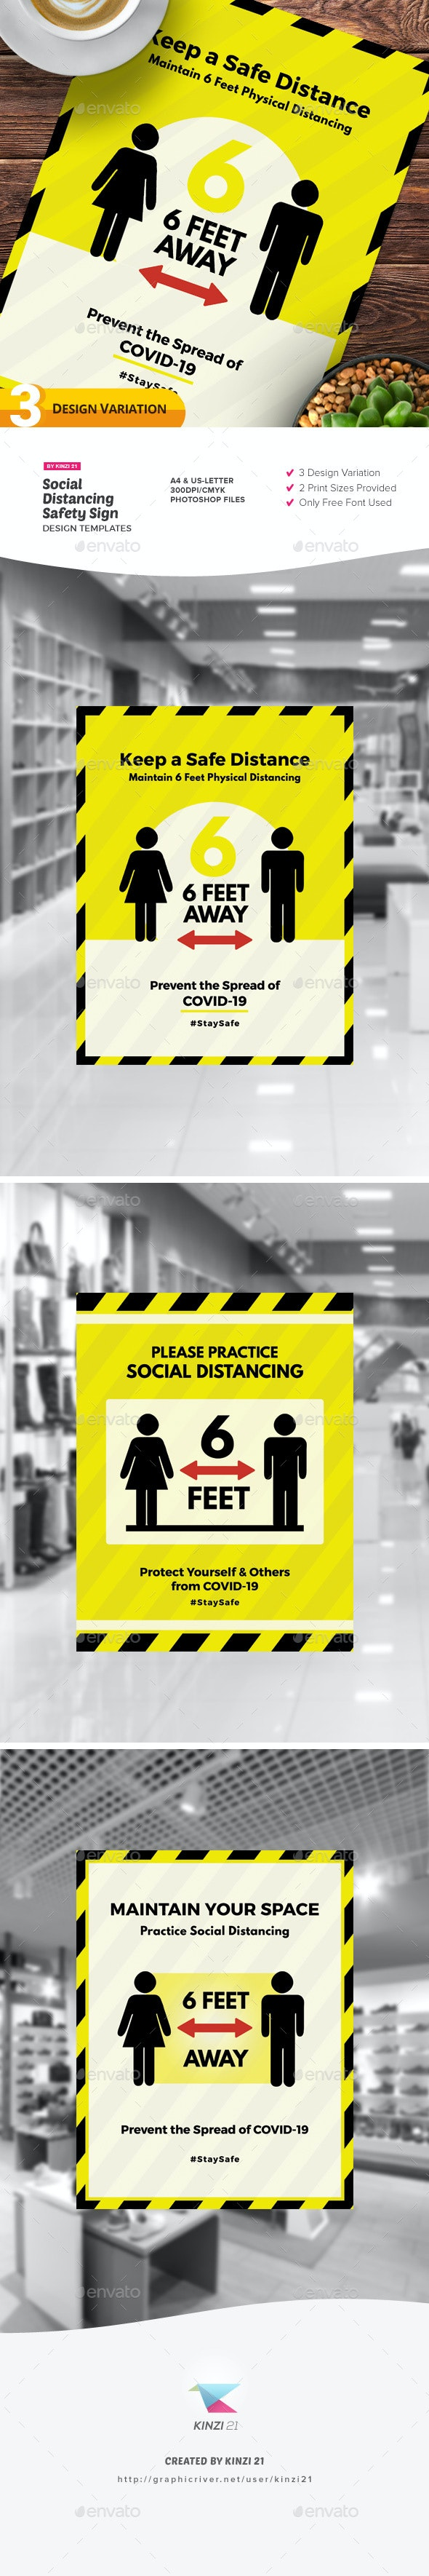 Social Distancing Safety Sign Design Templates - Miscellaneous Print Templates